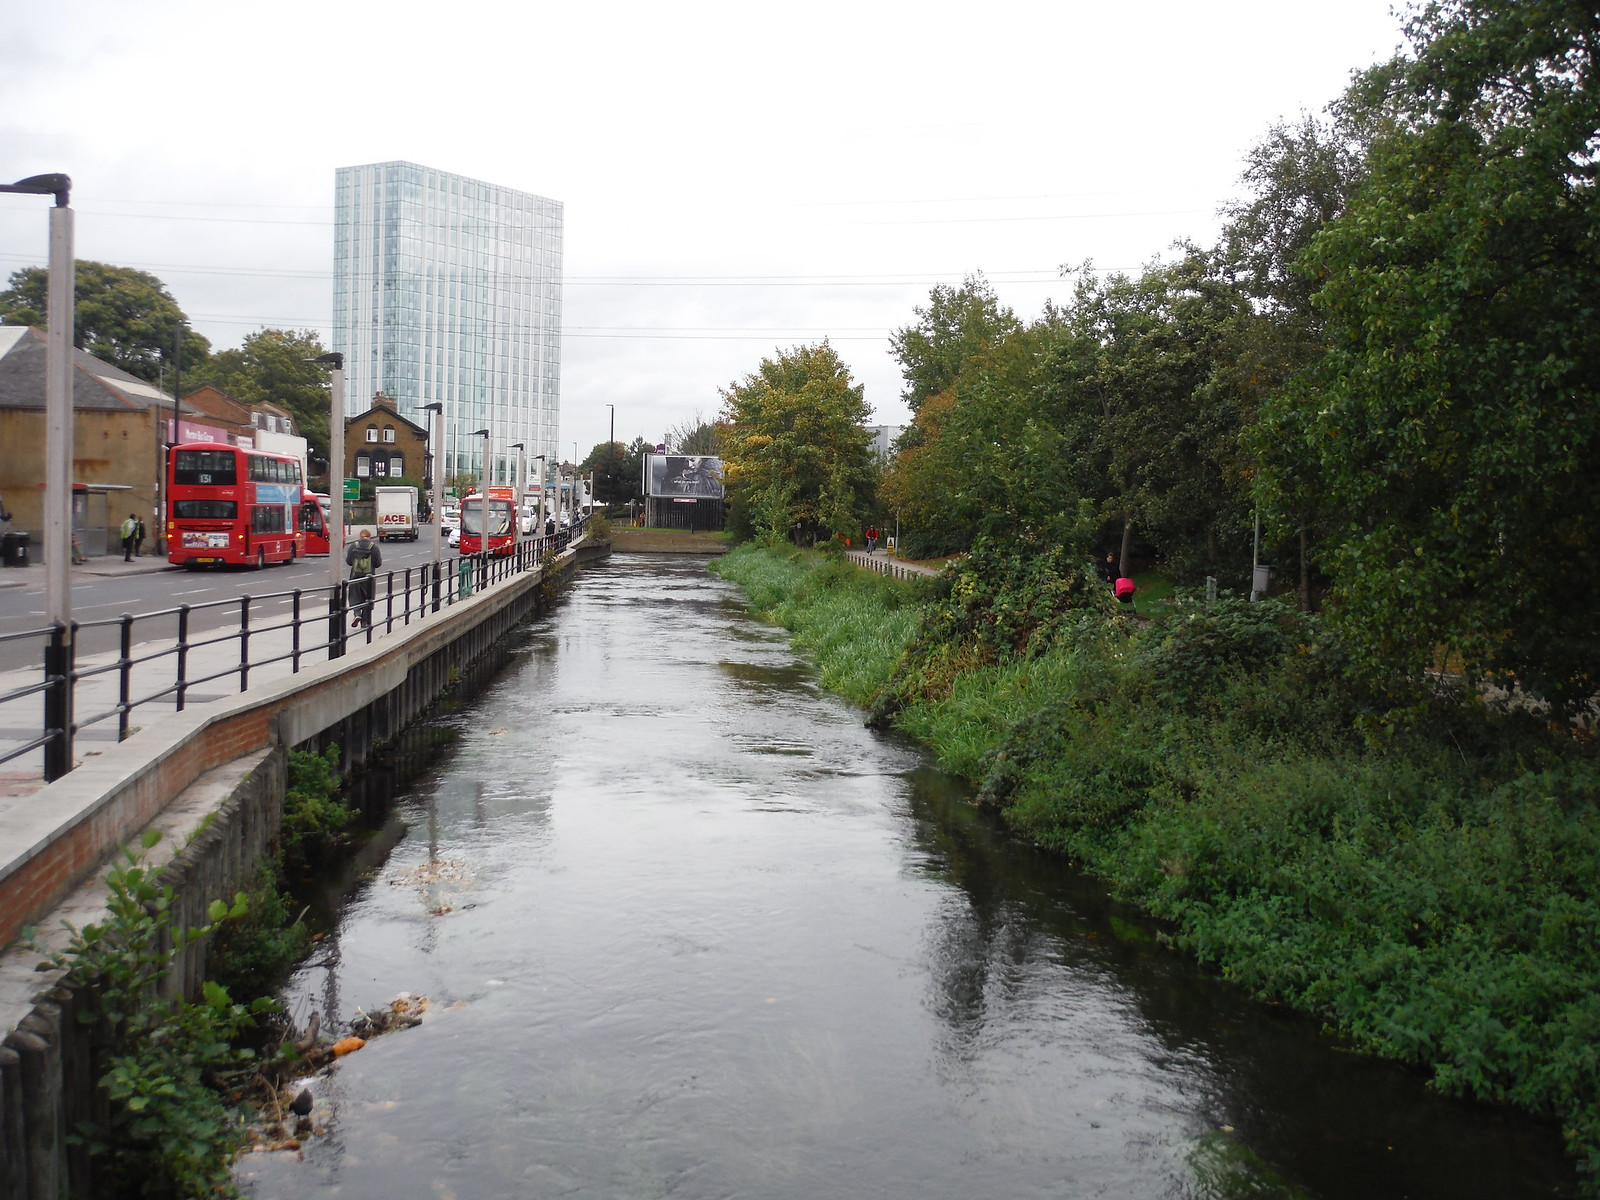 Merton High Street & River Wandle SWC Walk Short 13 - Morden Hall Park and Merton Abbey Mills